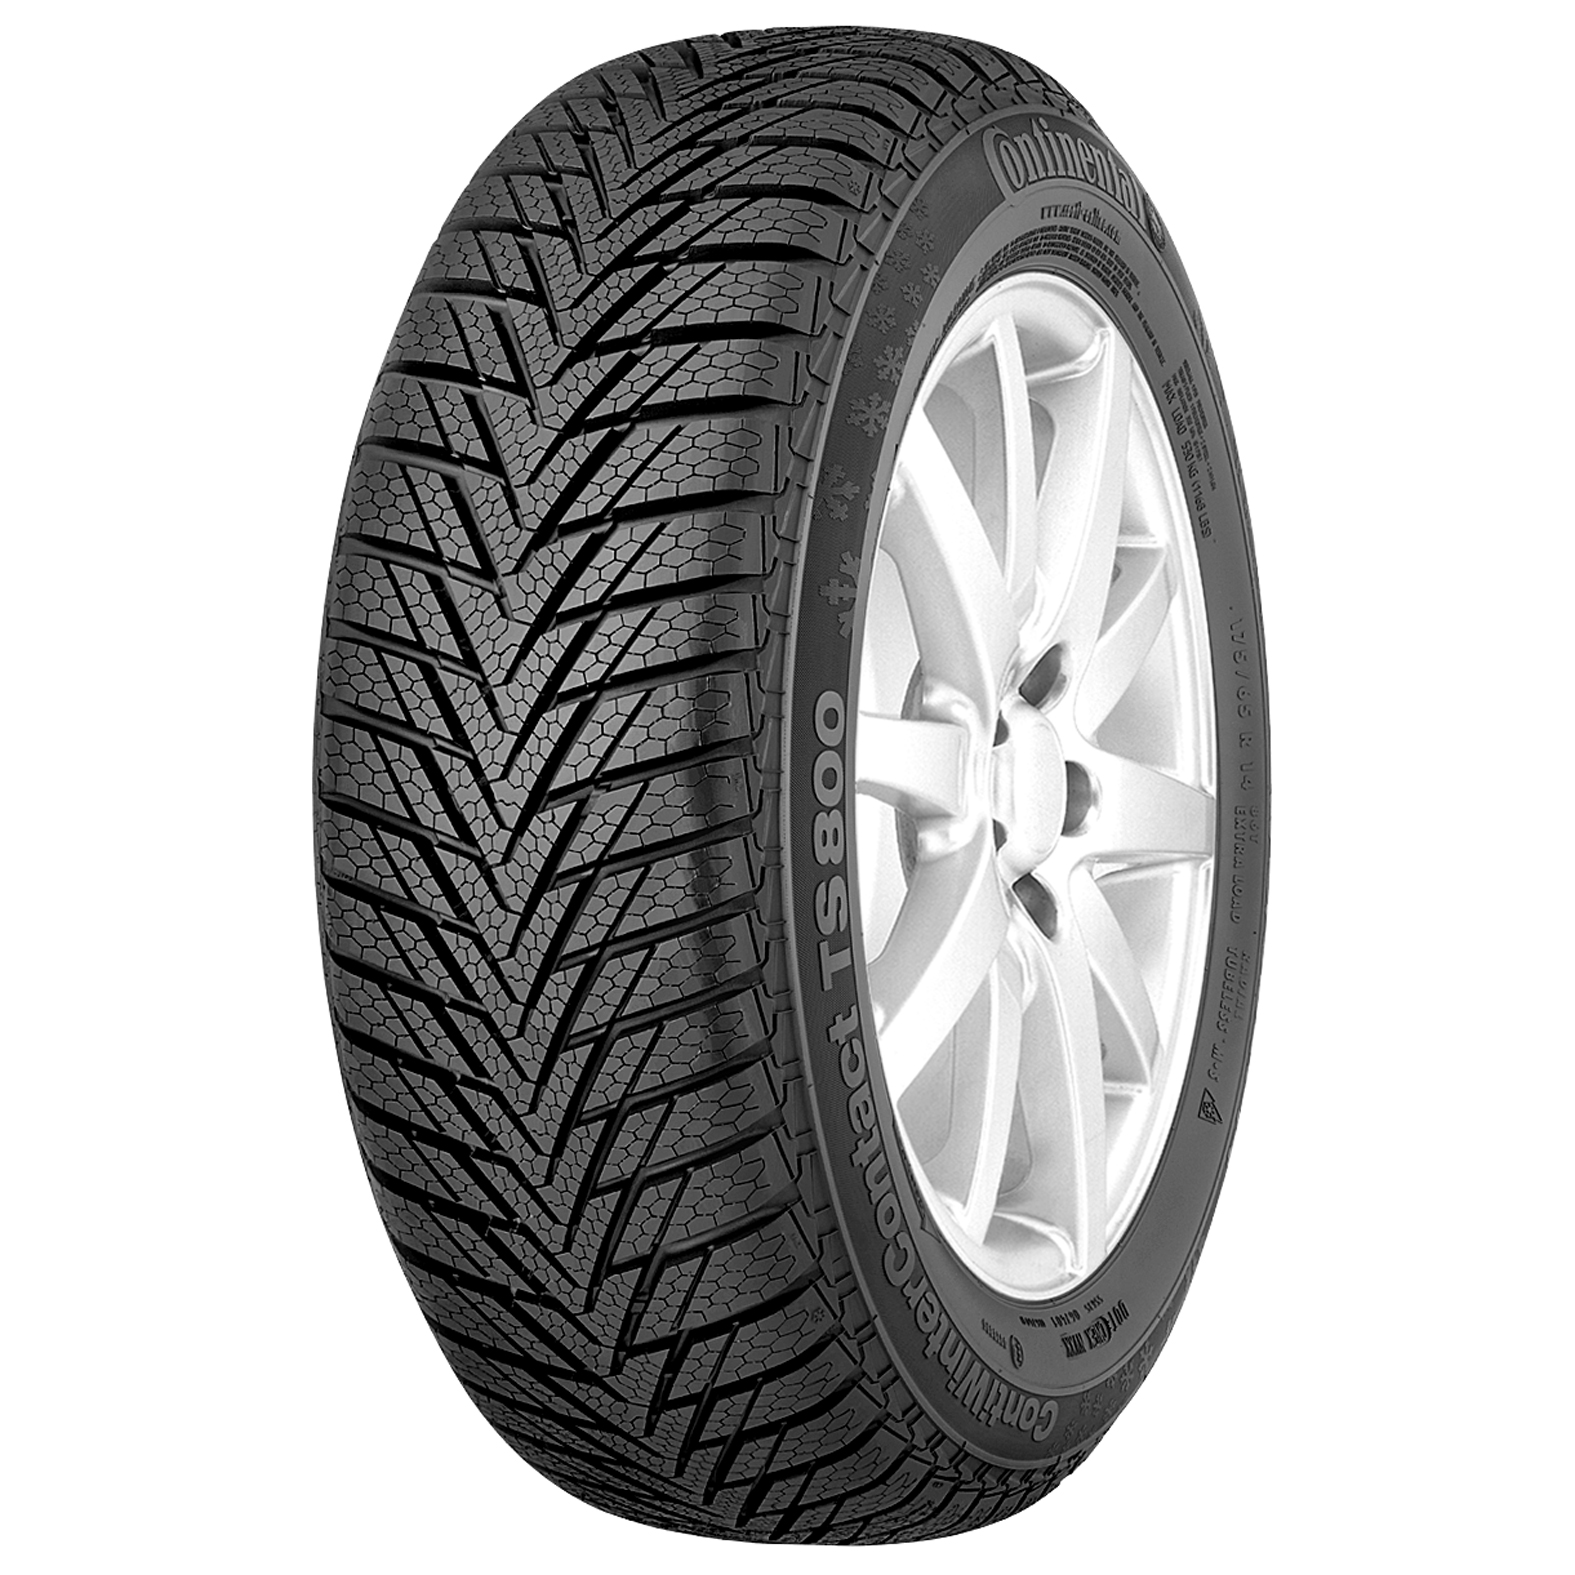 Continental CONTIWINTERCONTACT TS800 tire - angle